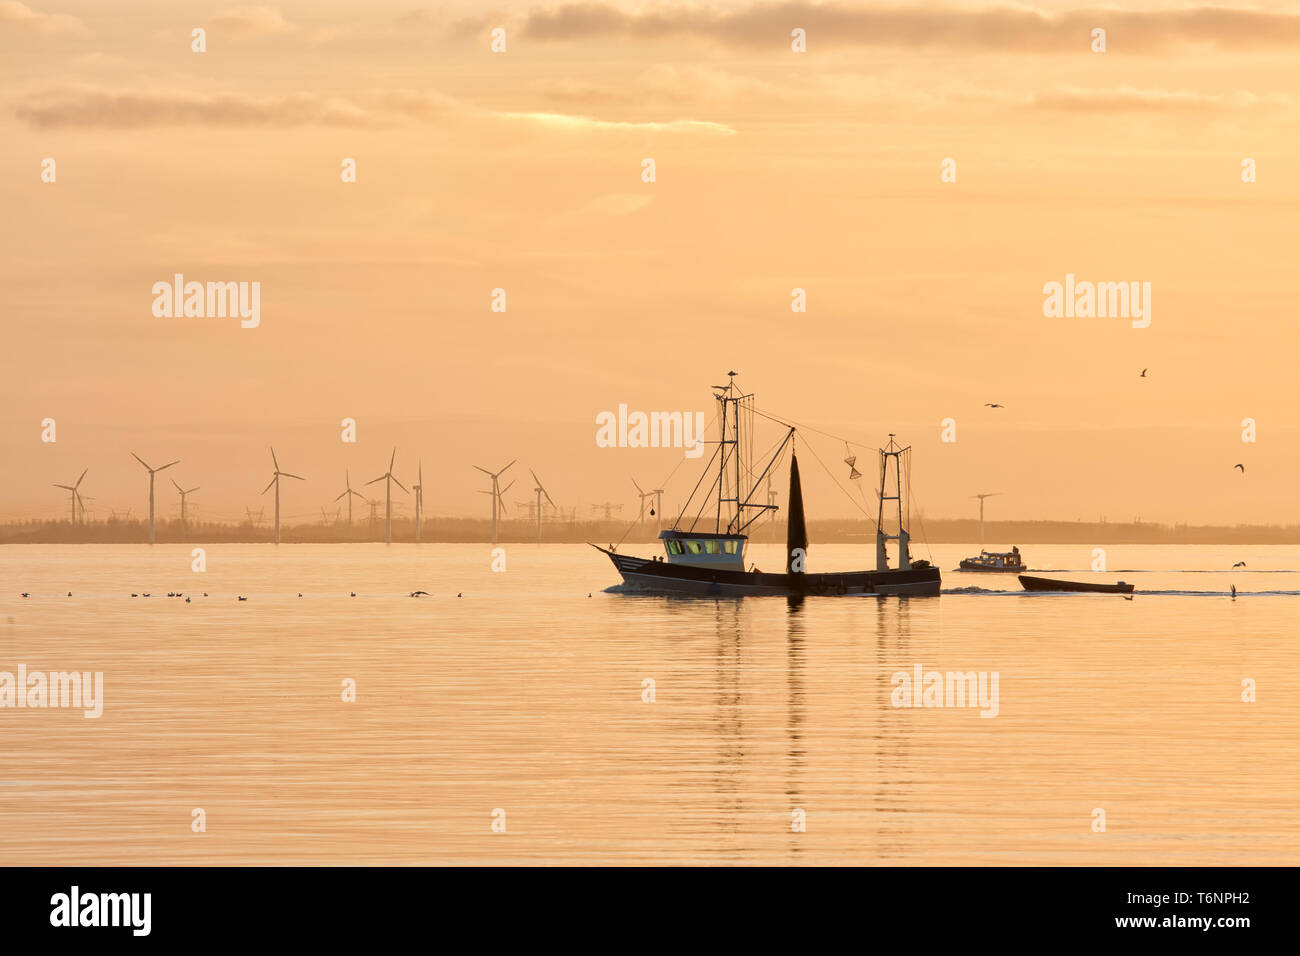 Sunset over Dutch sea with fishing ship returning to harbor - Stock Image